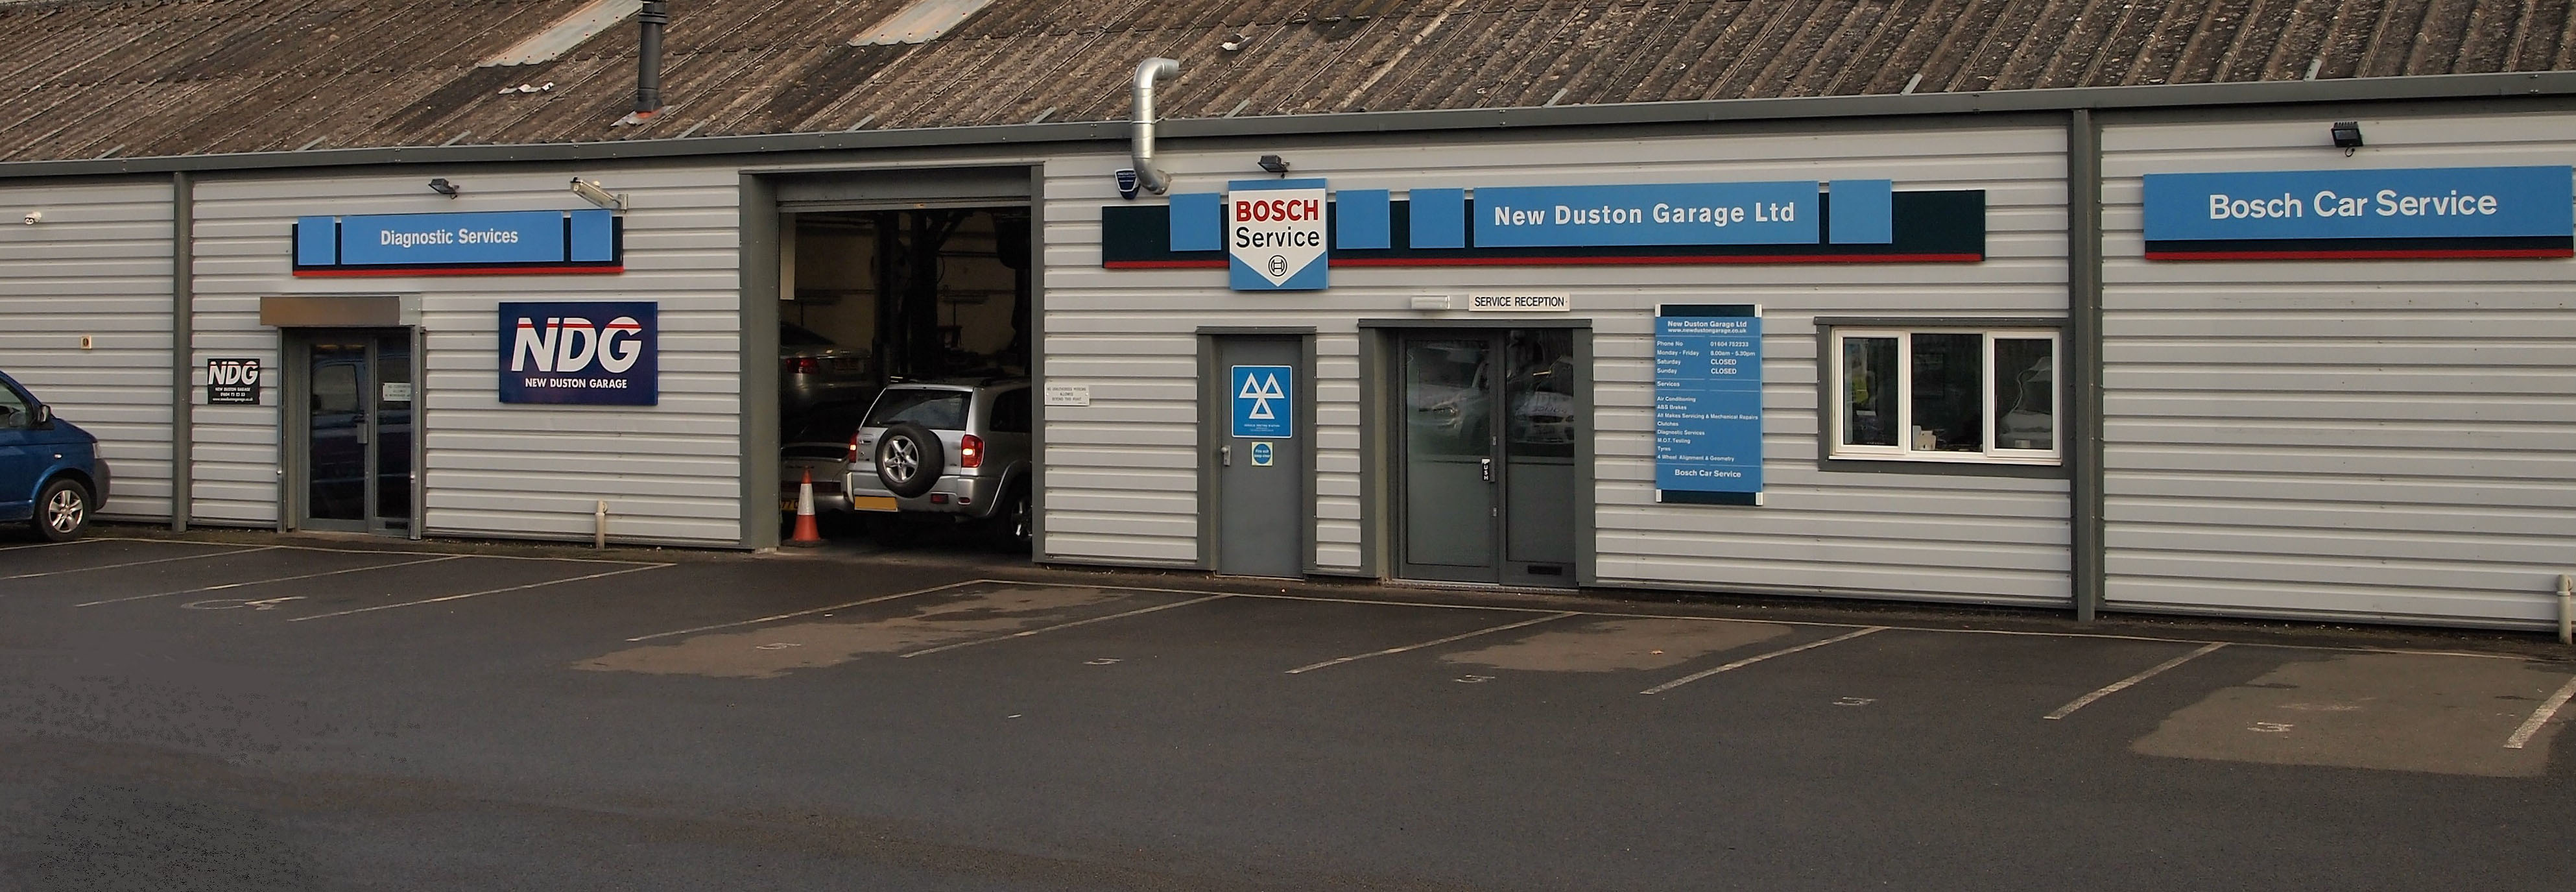 Gallery New Duston Garage